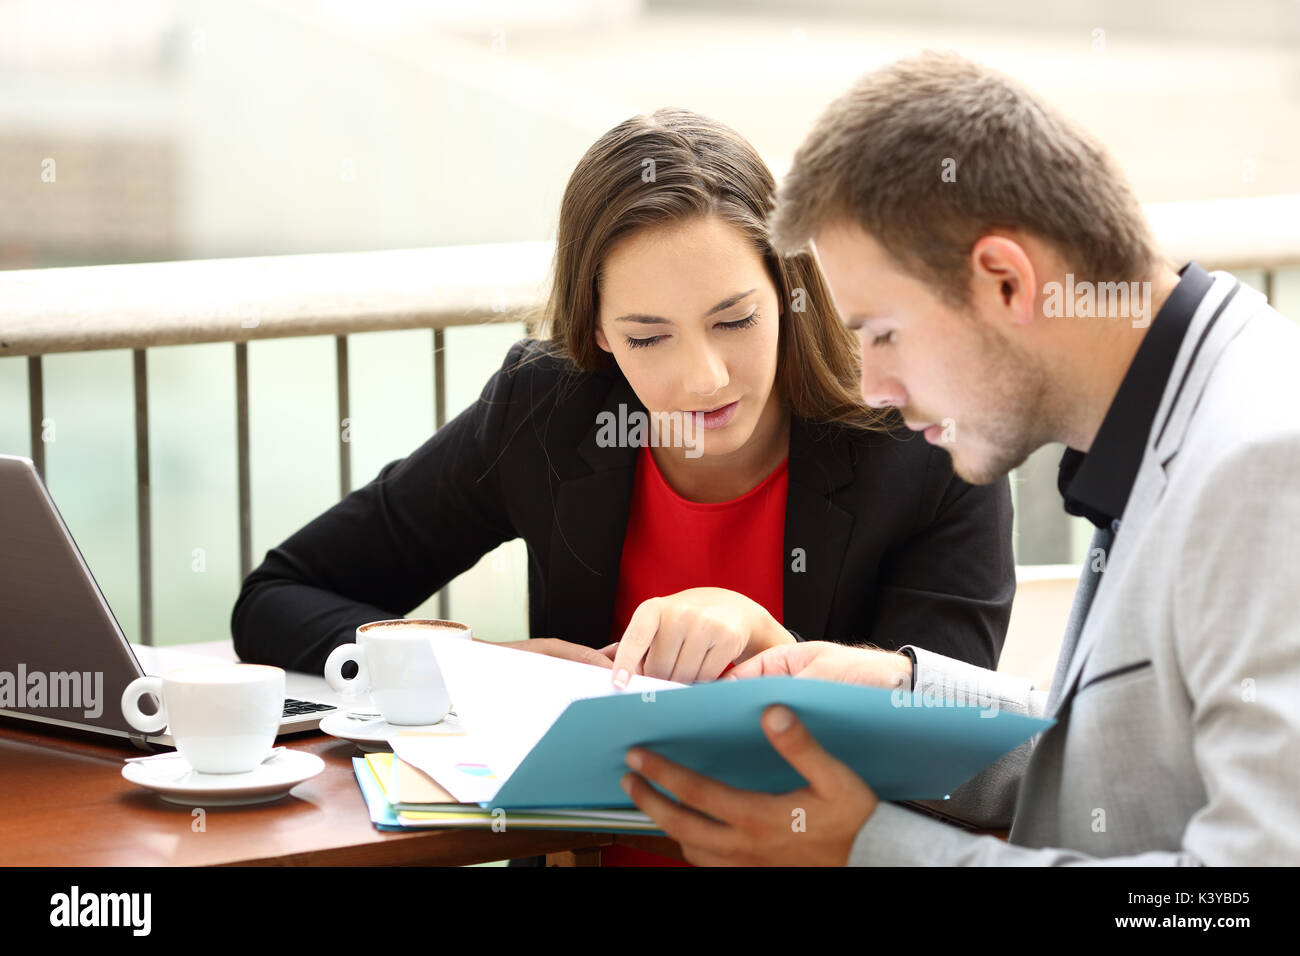 Two executives coworking analyzing documents sitting in a bar - Stock Image